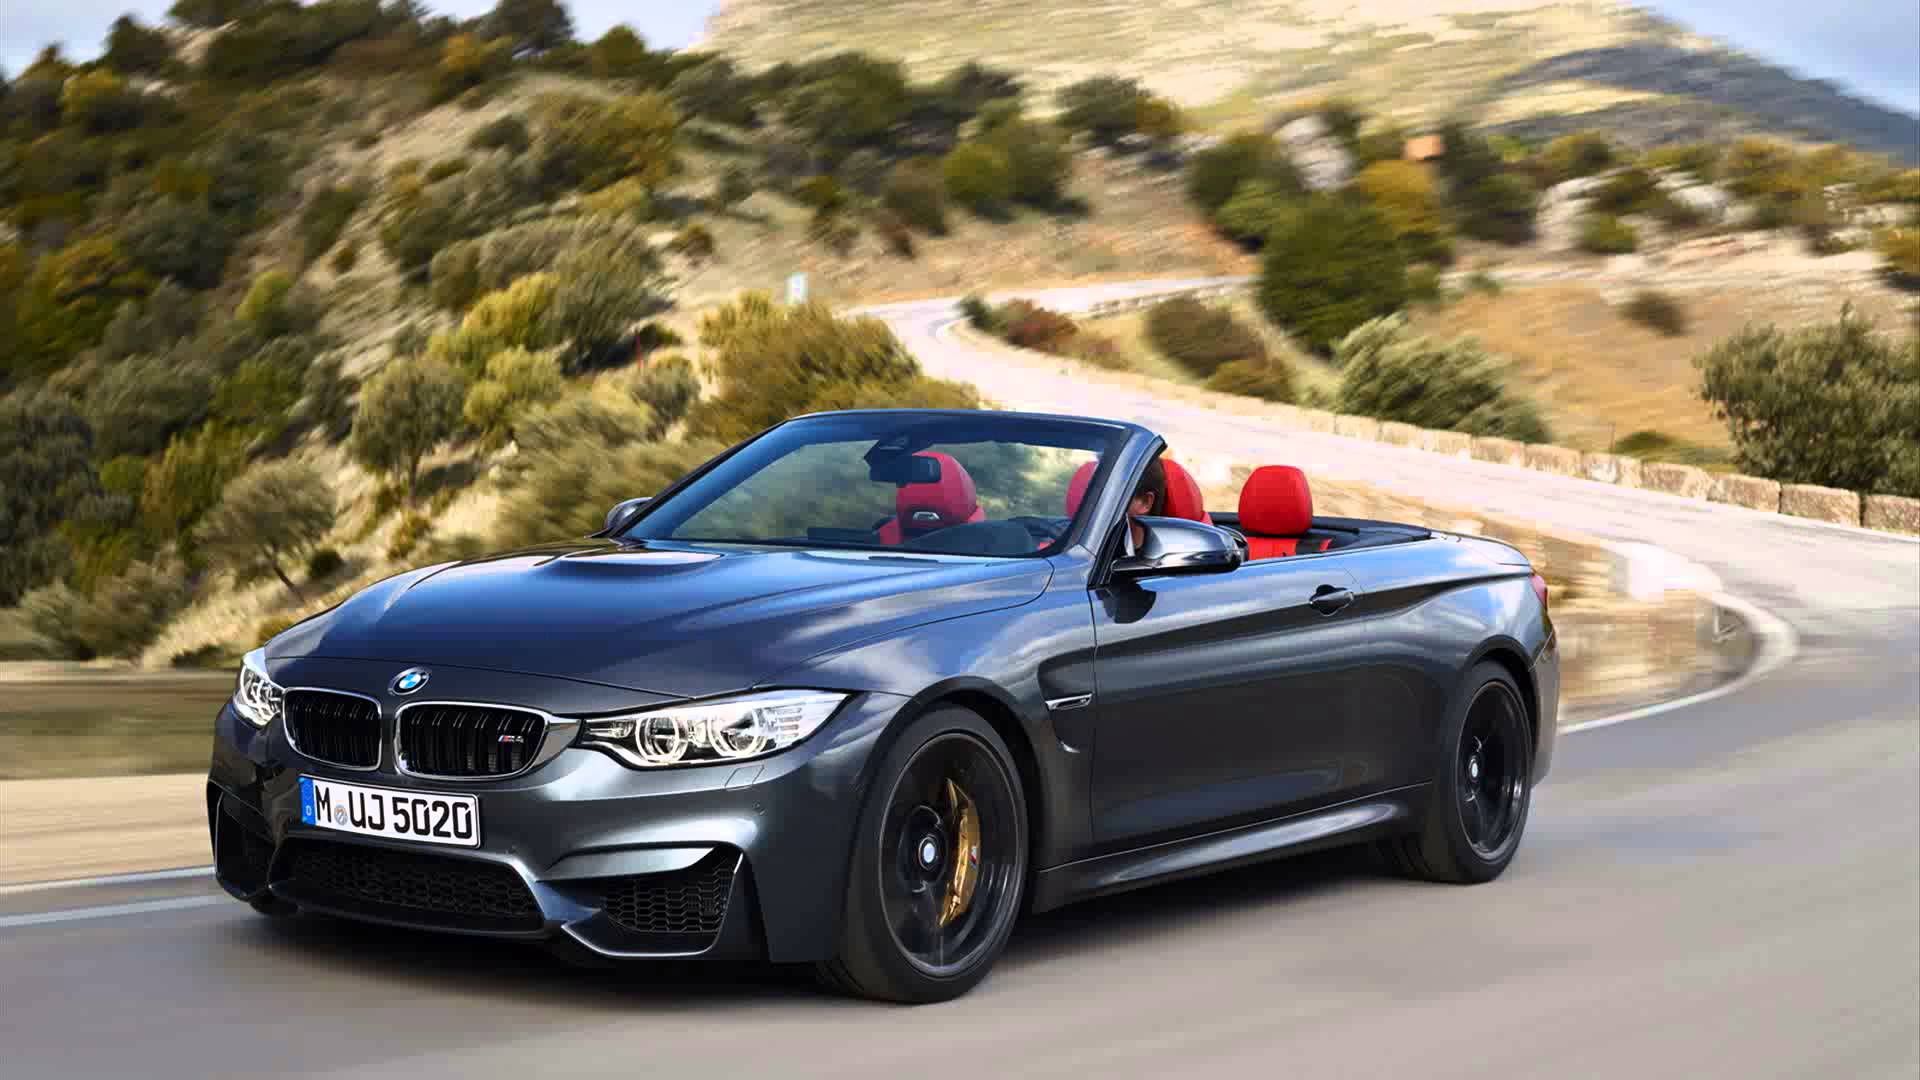 black bmw cars wallpapers photo - 5